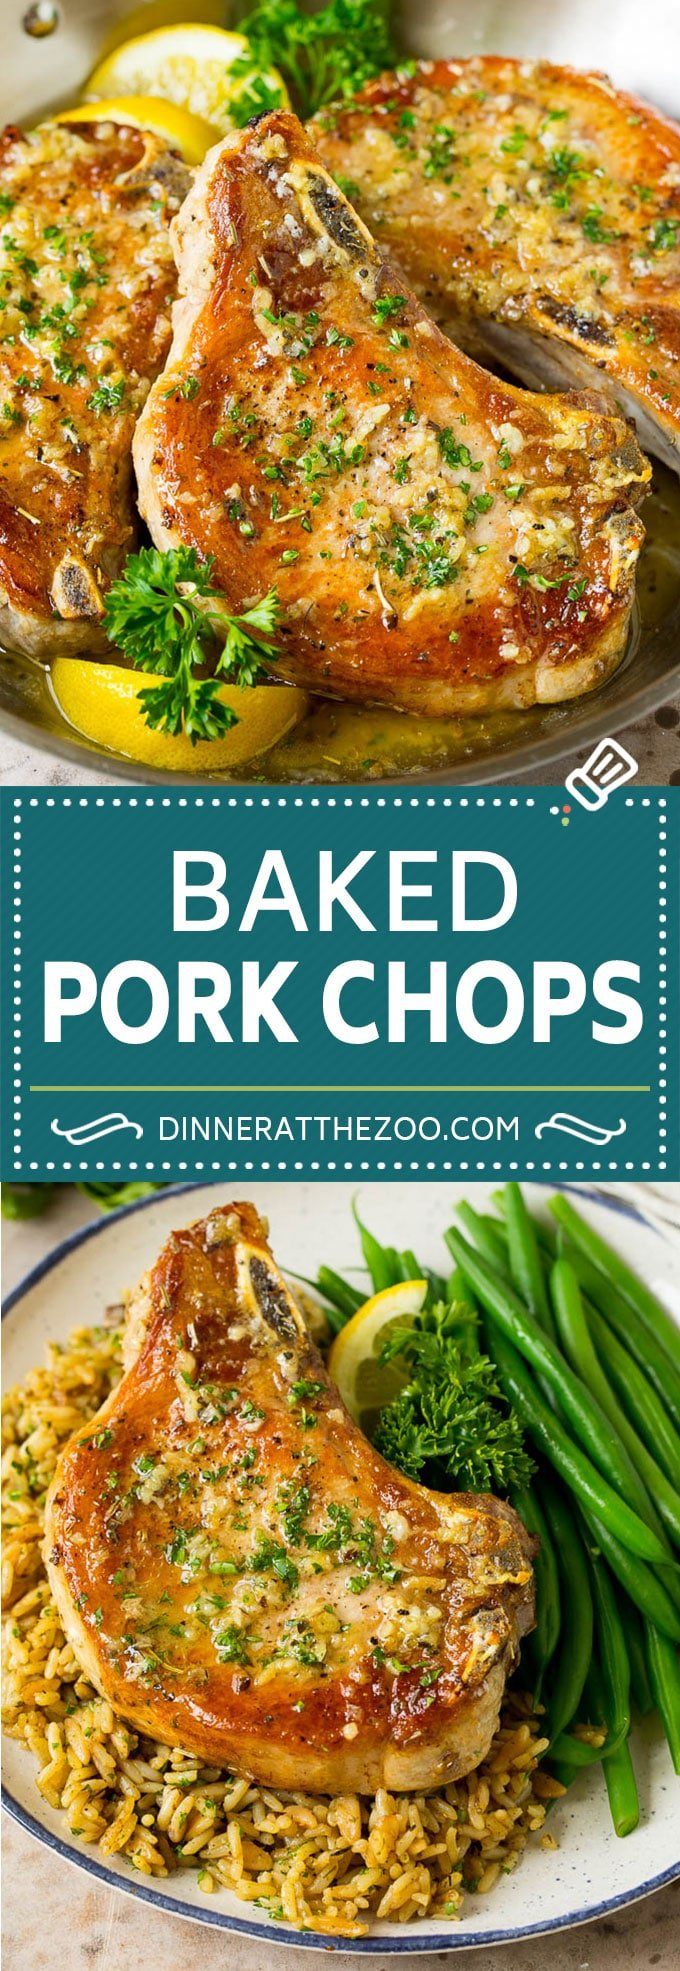 These baked pork chops are coated in garlic and herb butter, then oven roasted to golden brown perfection.